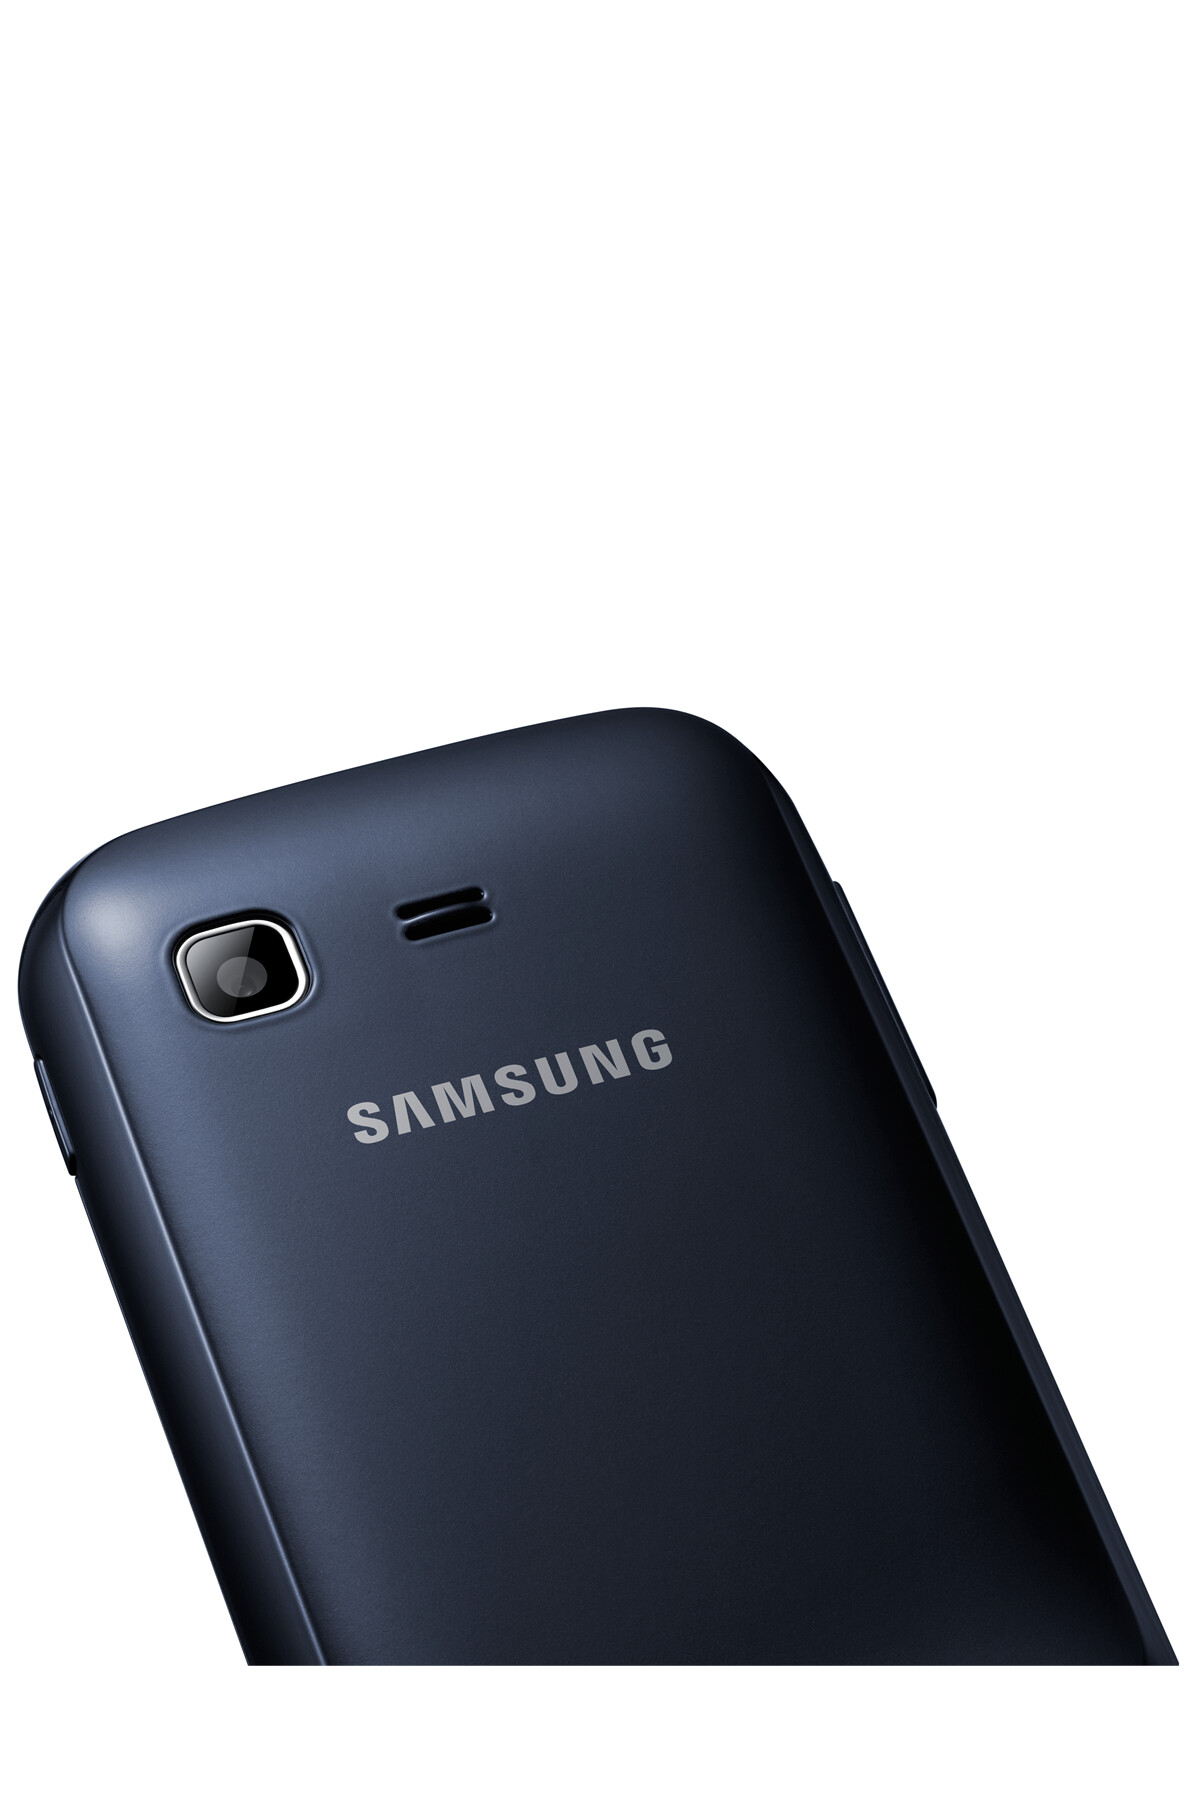 Samsung introduces Galaxy Pocket Duos, pushing the low-end ...